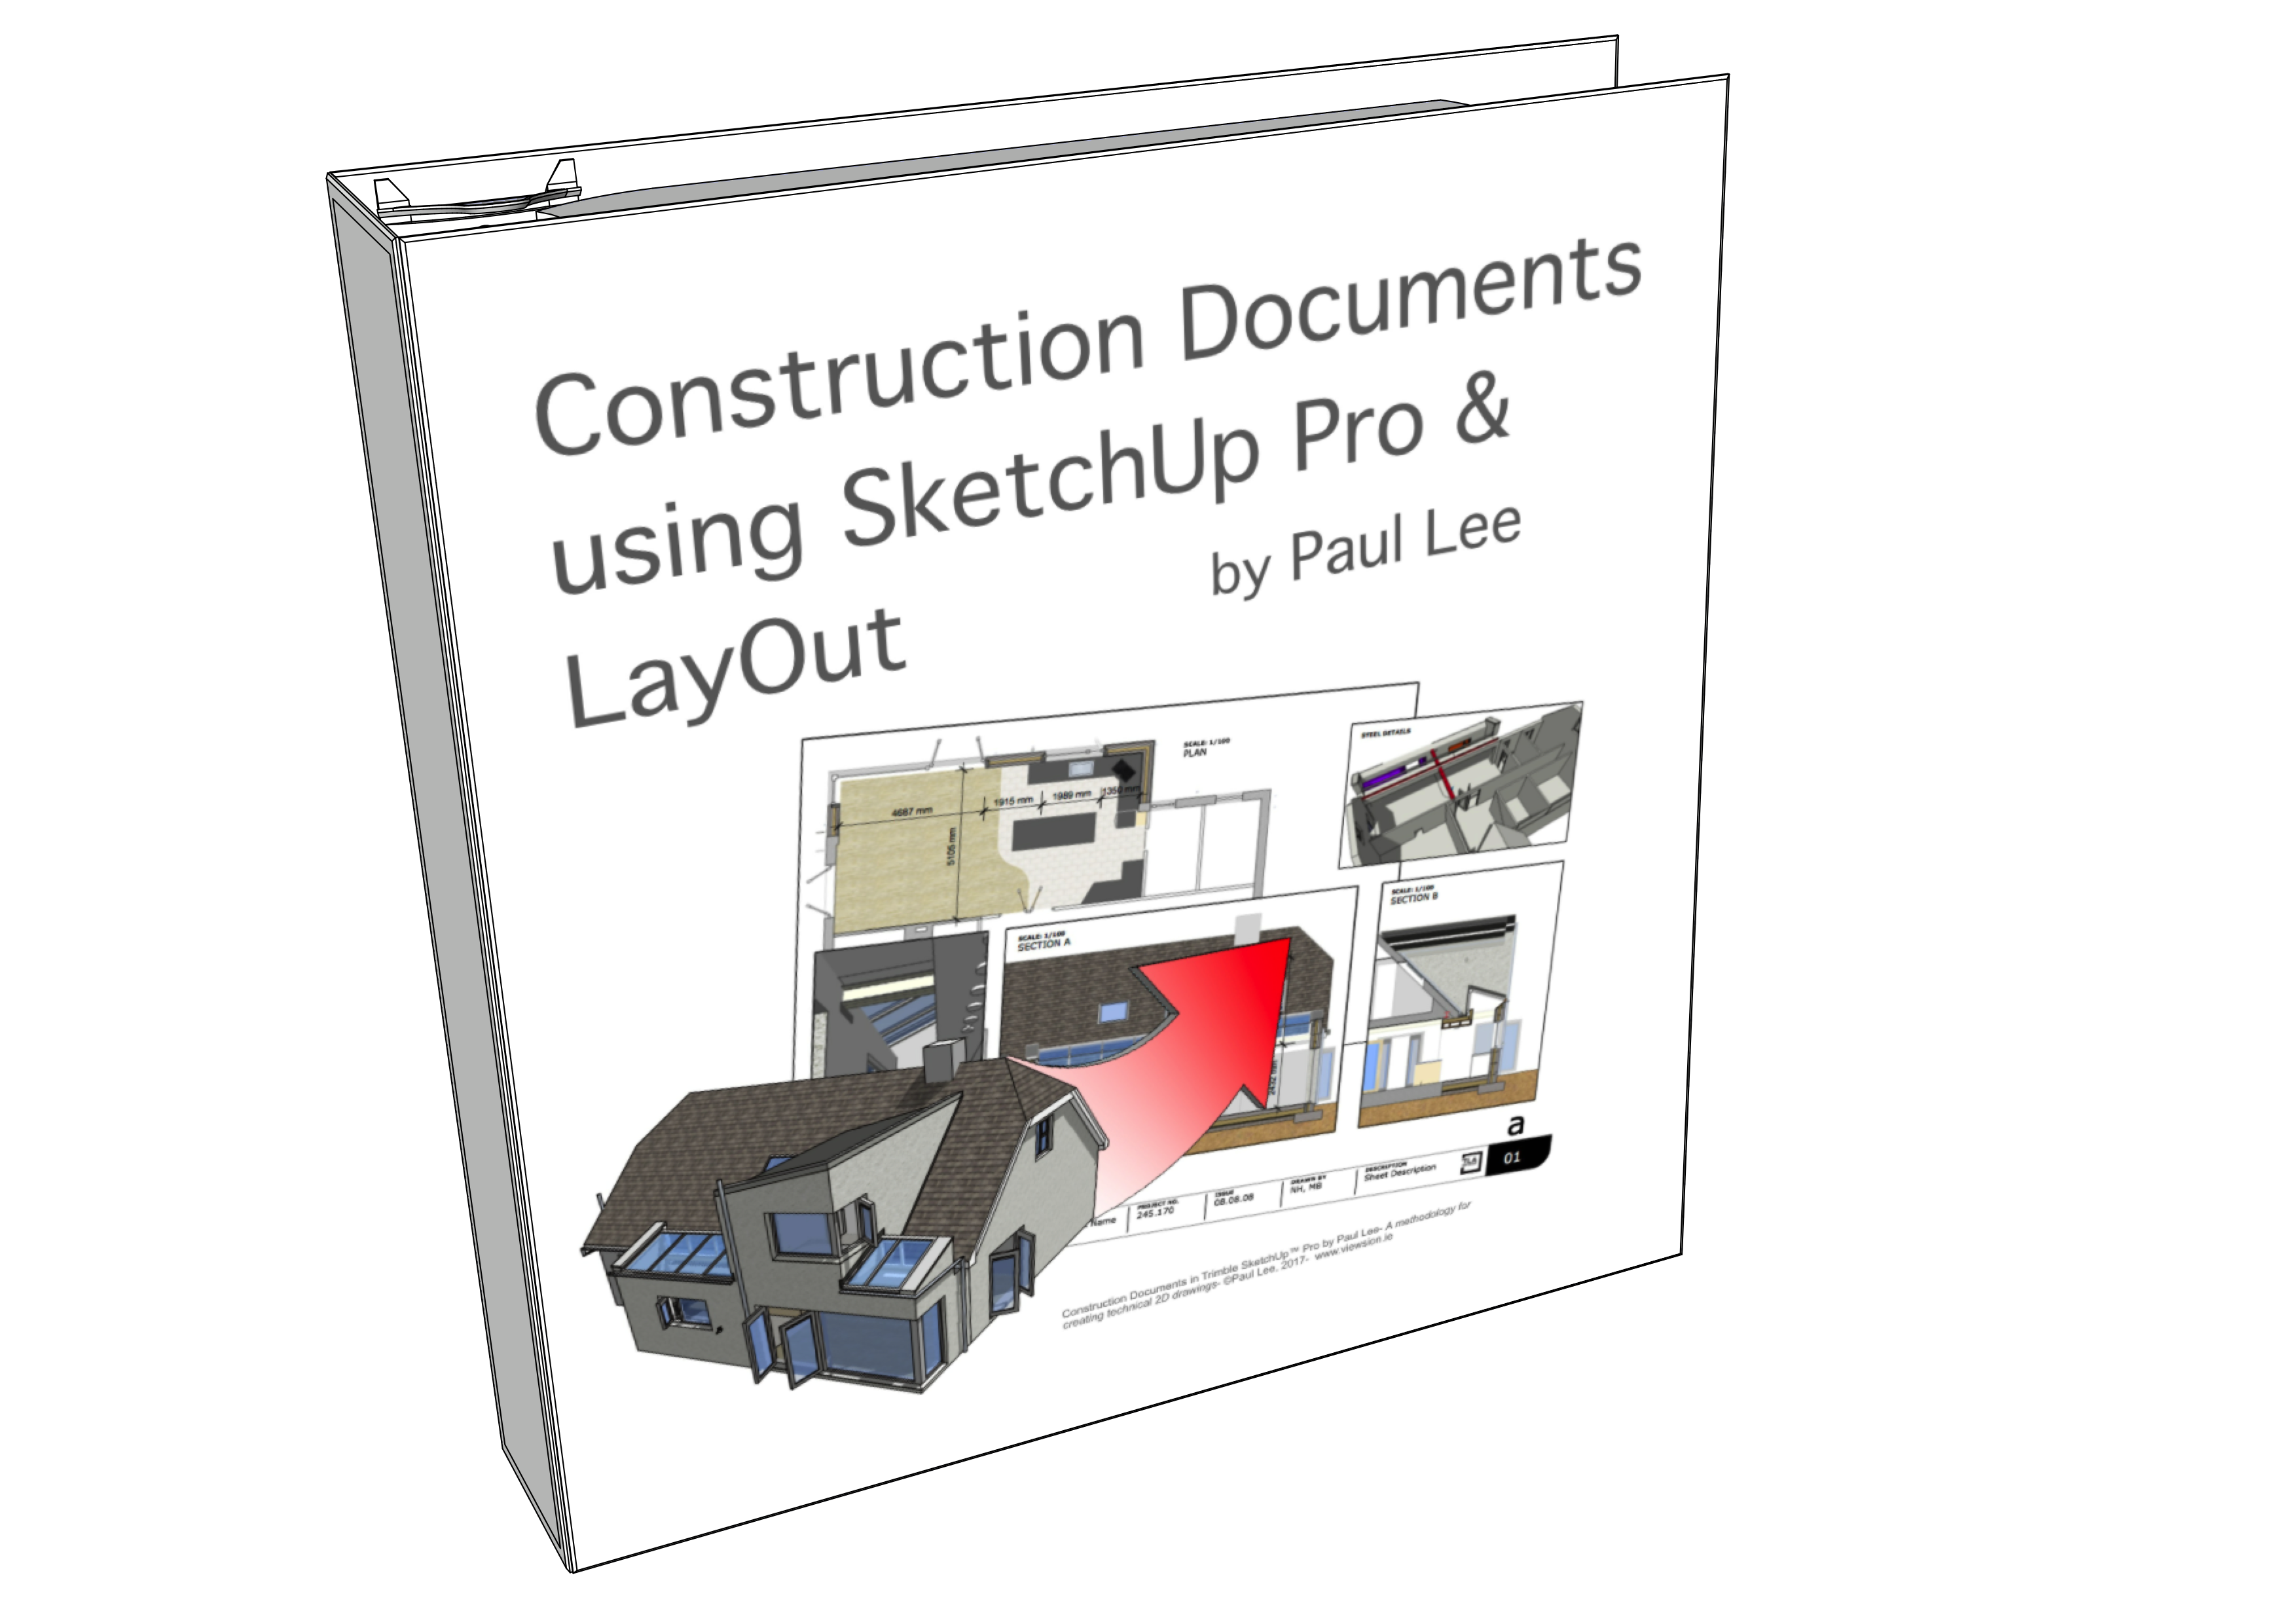 Paul Lee pioneered SketchUp for Construction Documents in the publication of his book in 2012.